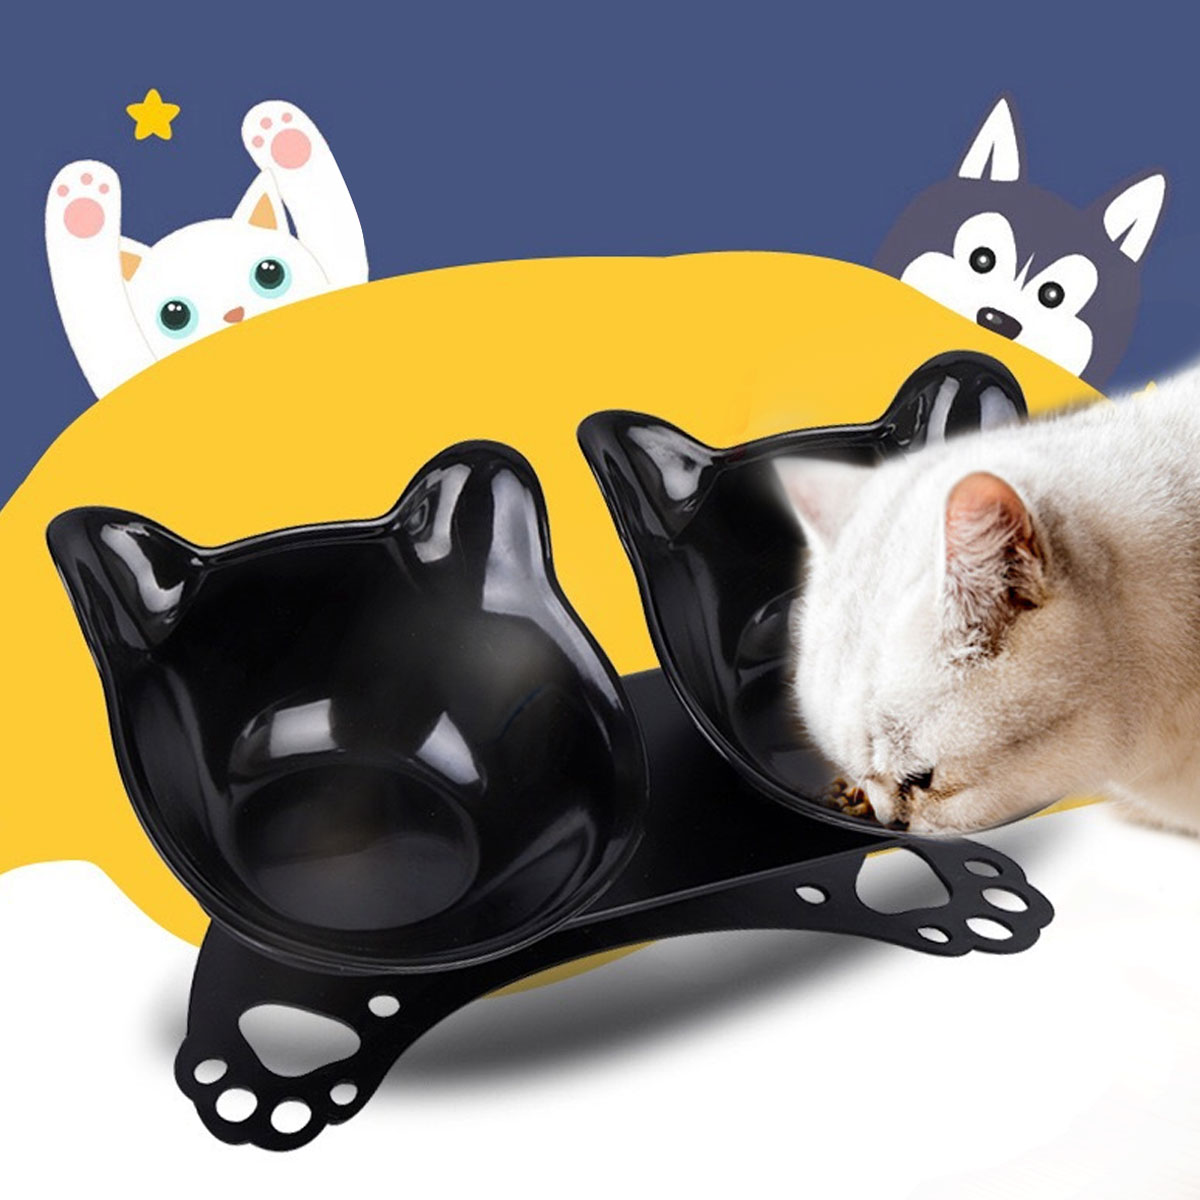 Non slip Cat Bowls Double Bowls With Raised Stand Pet Food And Water Bowls For Cats Dogs Feeders Cat Bowl Pet Supplies|Cat Feeding & Watering Supplies|   - AliExpress